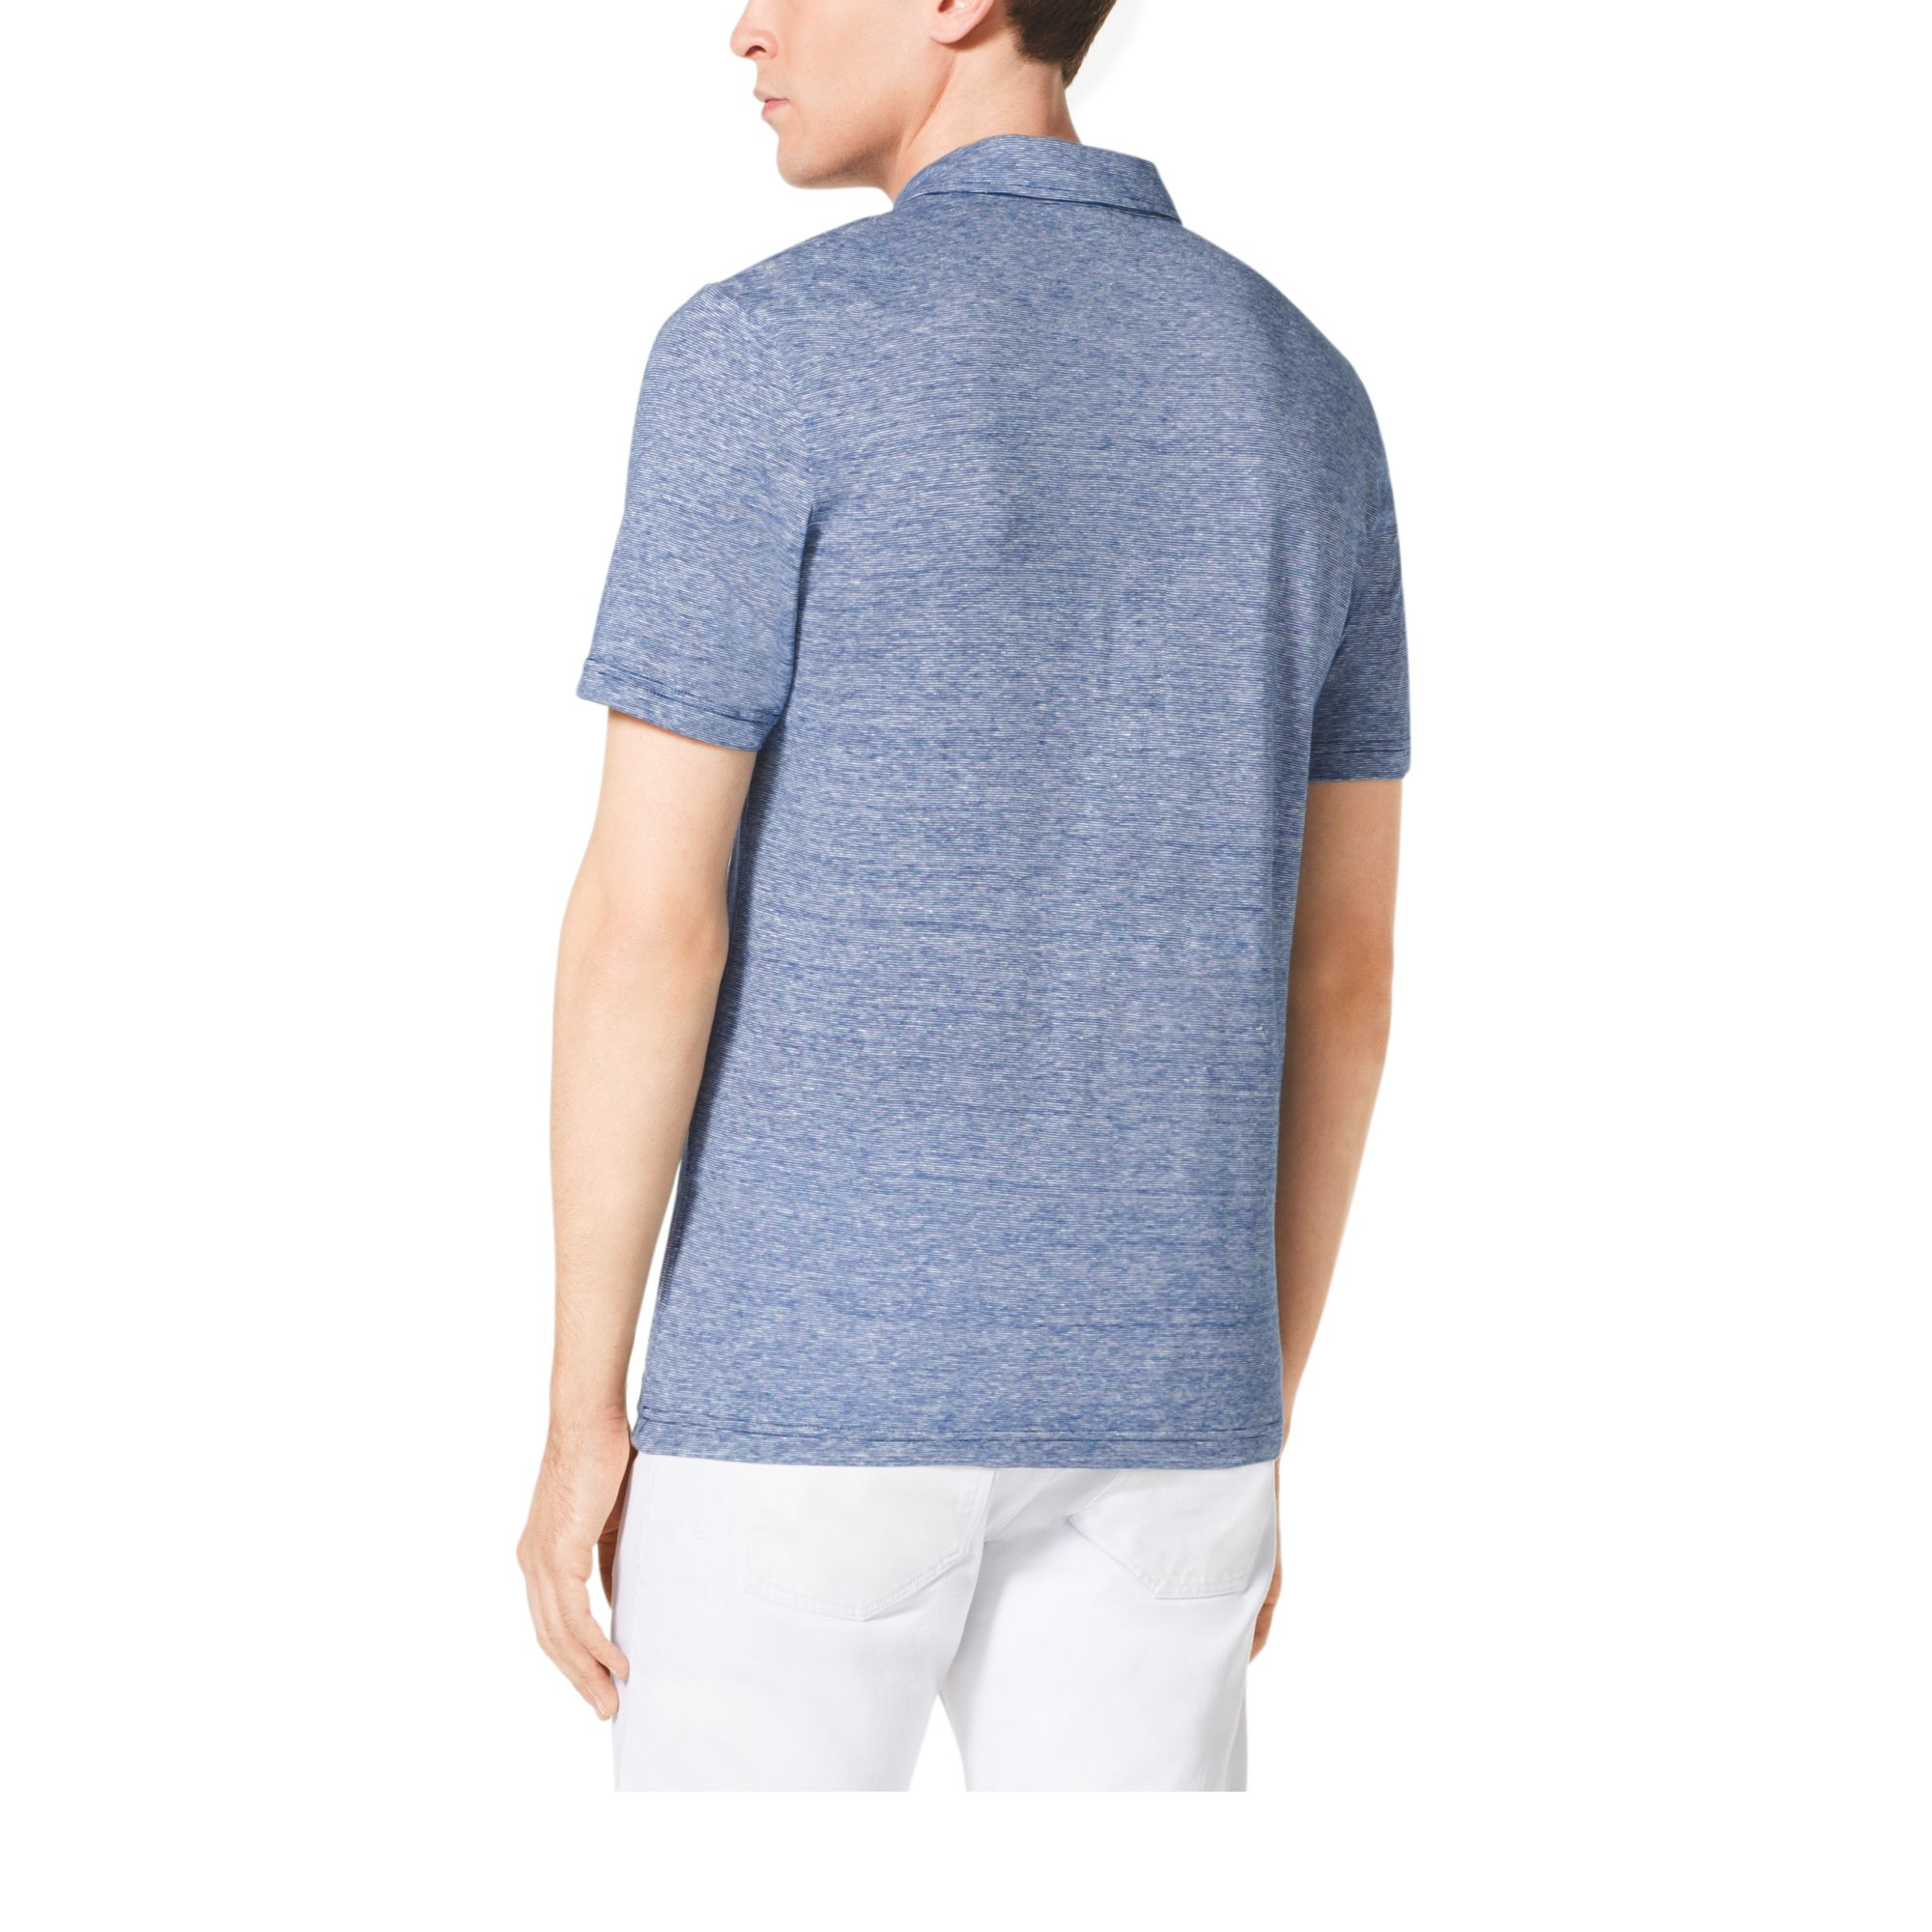 Michael Kors Linen And Cotton Polo Shirt In Blue For Men